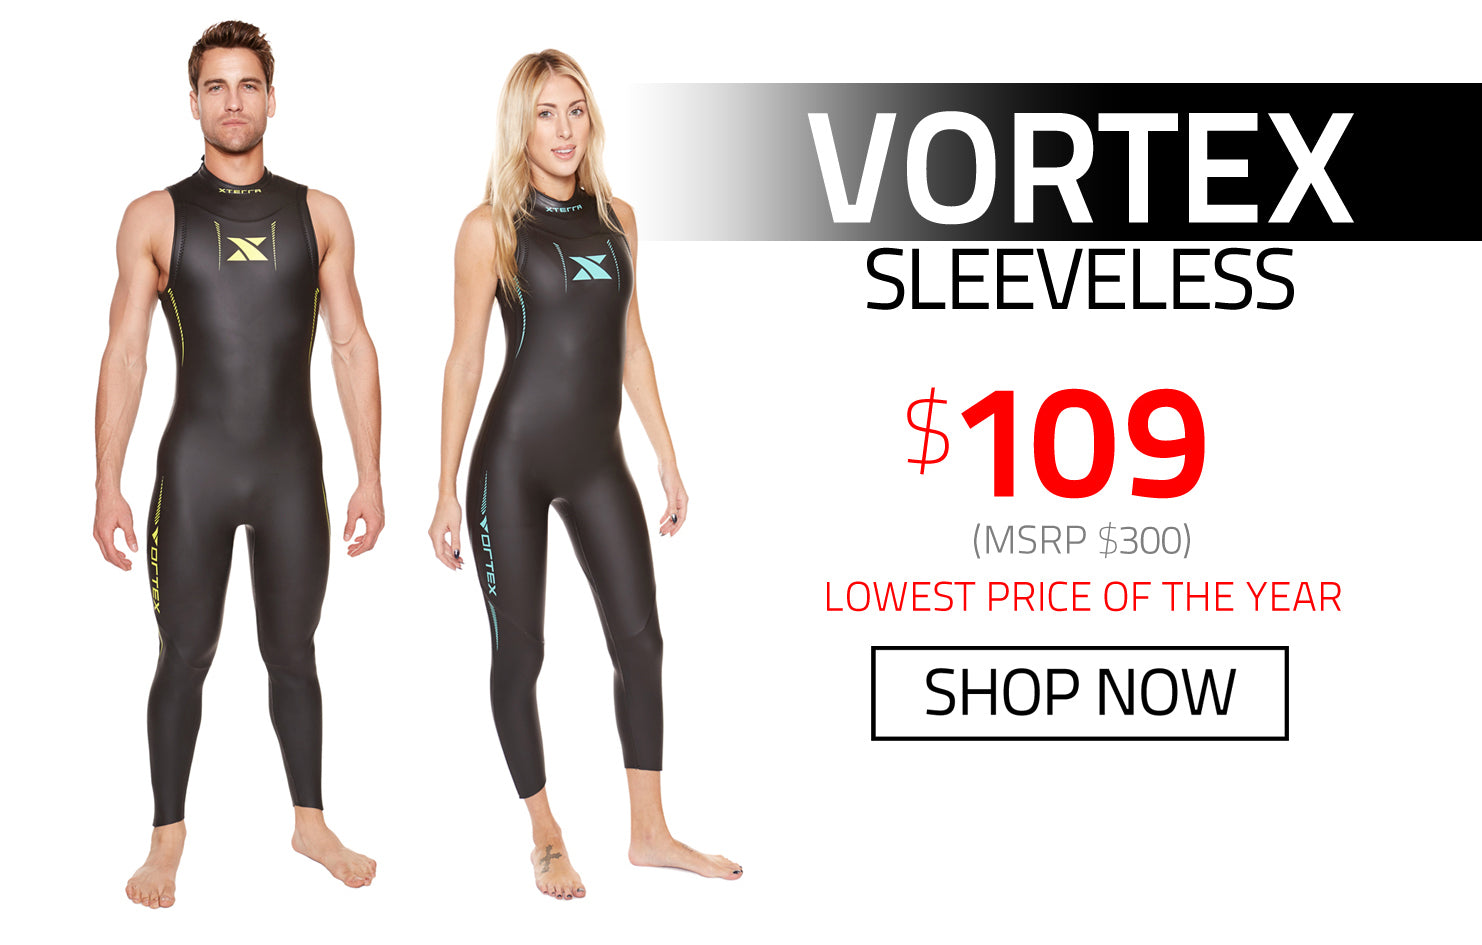 vortex sleeveless sale